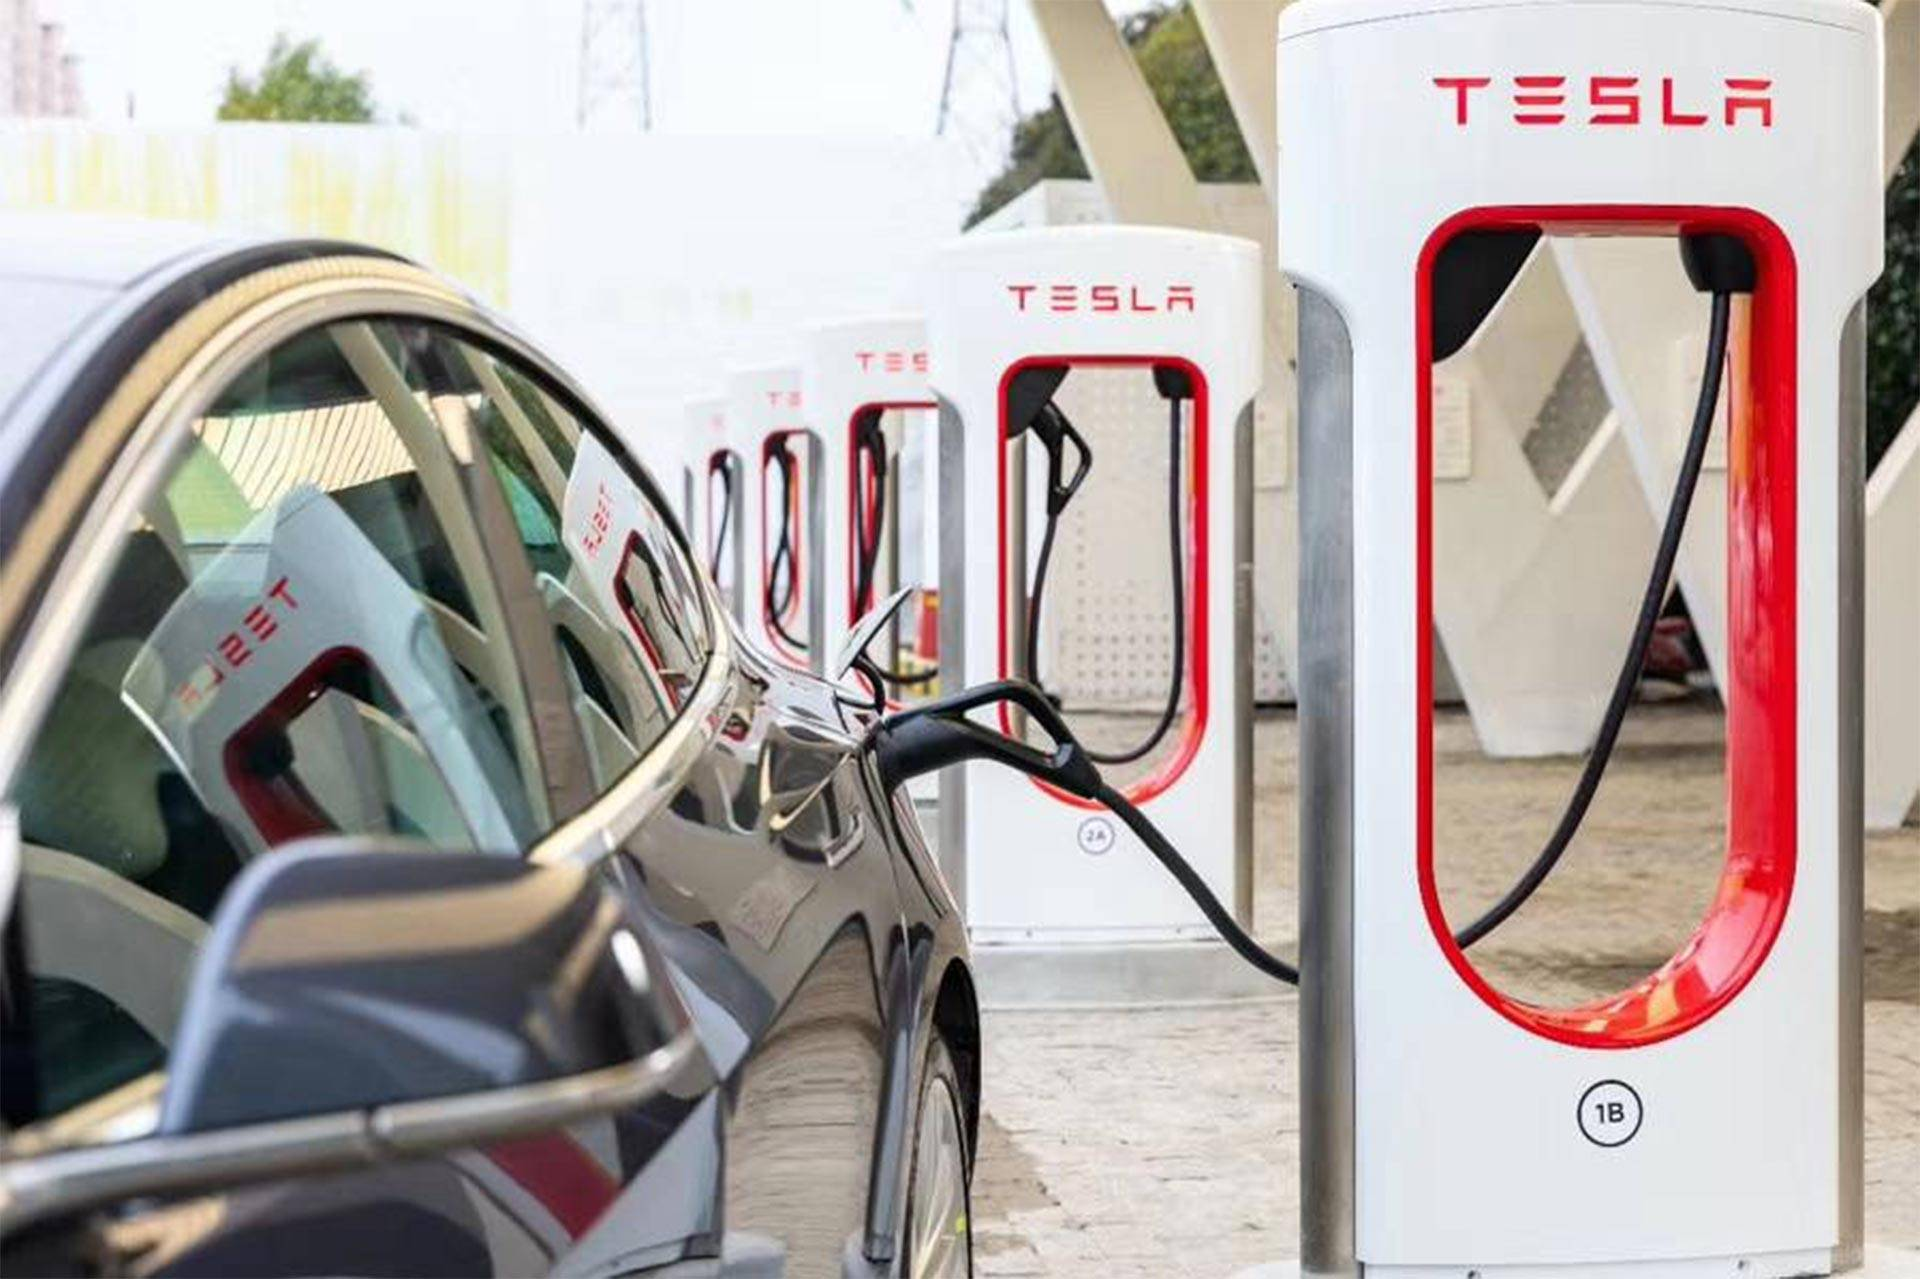 Tesla Supercharging Network From 6 Stations in California to 16,320 Charging Stalls Globally